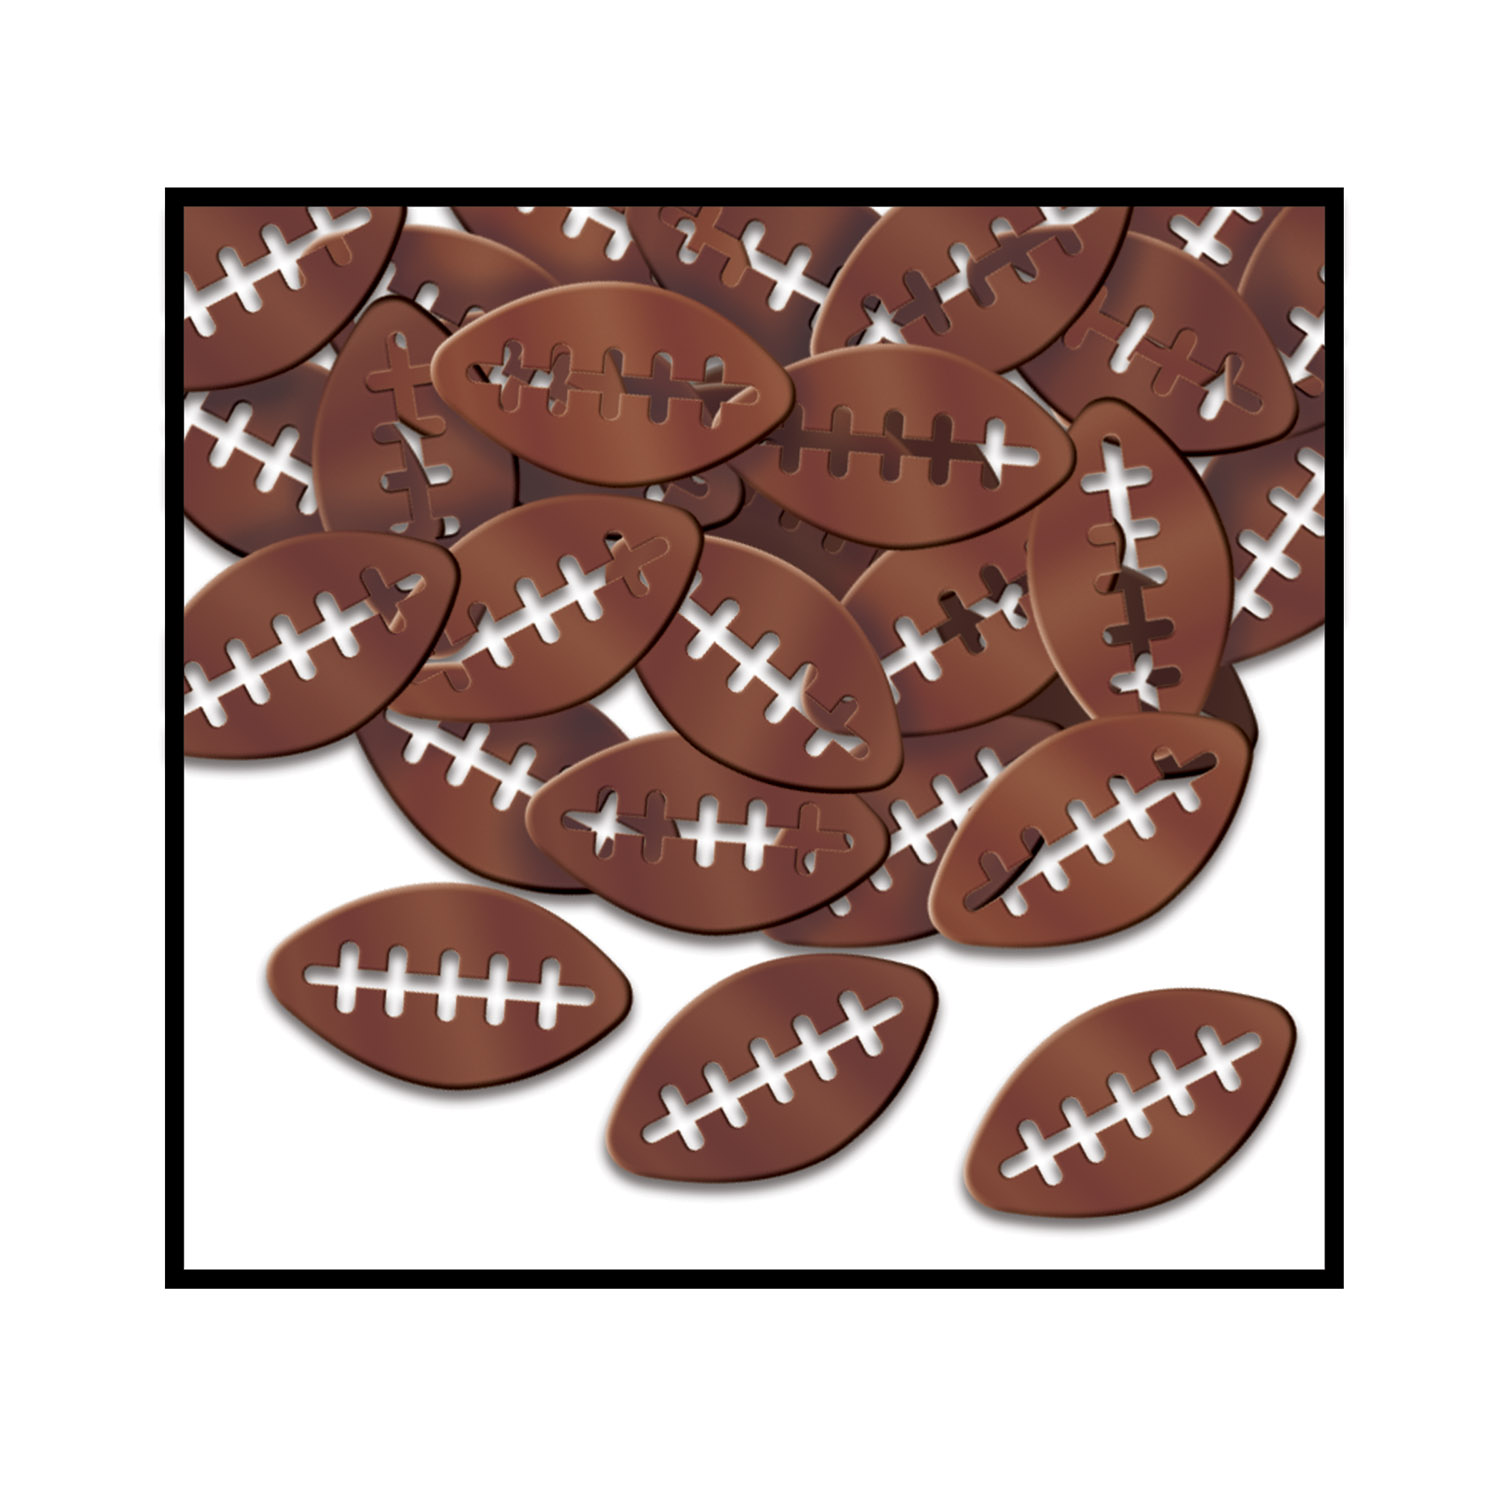 Fanci-Fetti Footballs (Pack of 12) Fanci-Fetti Footballs, Metallic Confetti, Inexpensive party supplies, Cheap table decorations, Game Day, Sports Decor, Football supplies, Fall decorations